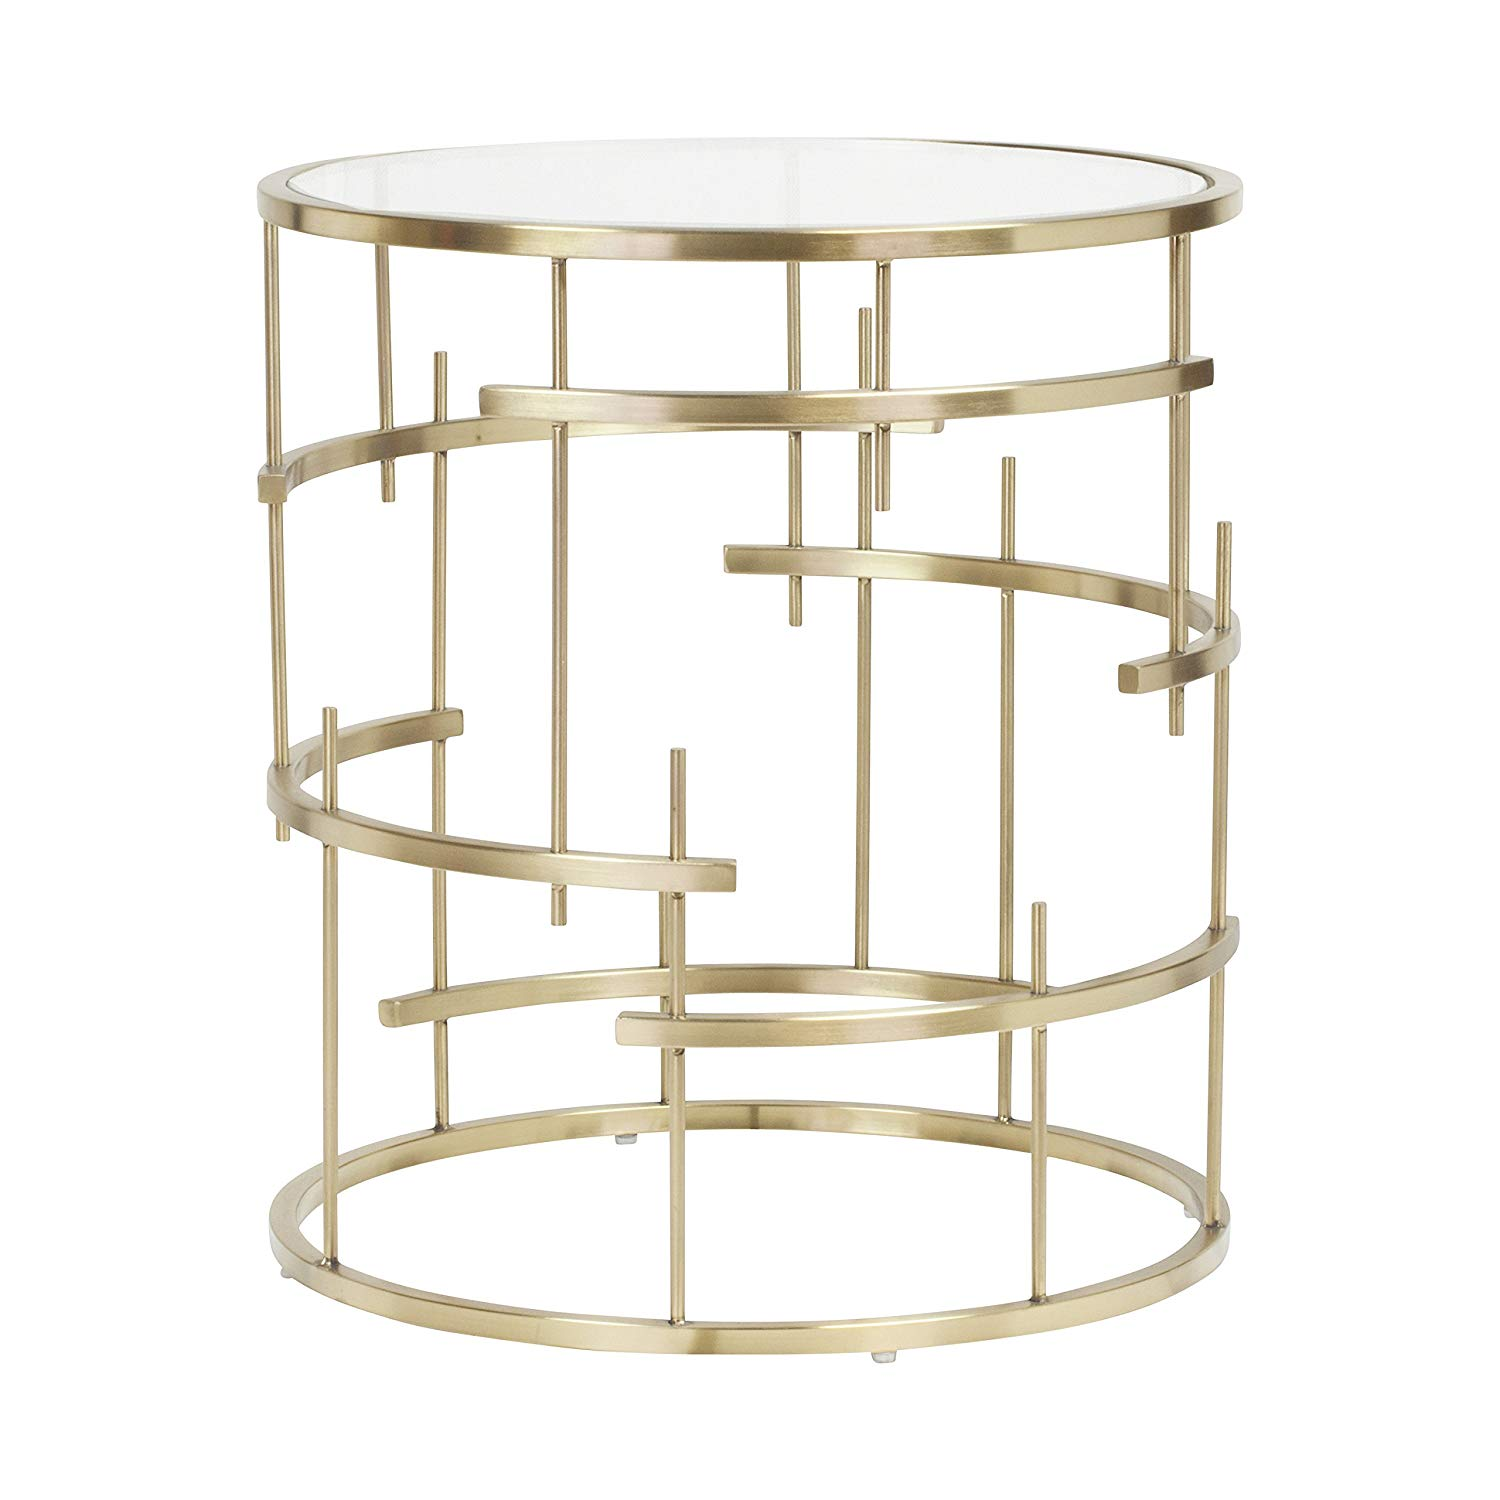 design tree home esme end table brushed gold and glass accent with top kitchen dining high chairs bedside cabinets tall small round silver side reclaimed wood exterior furniture